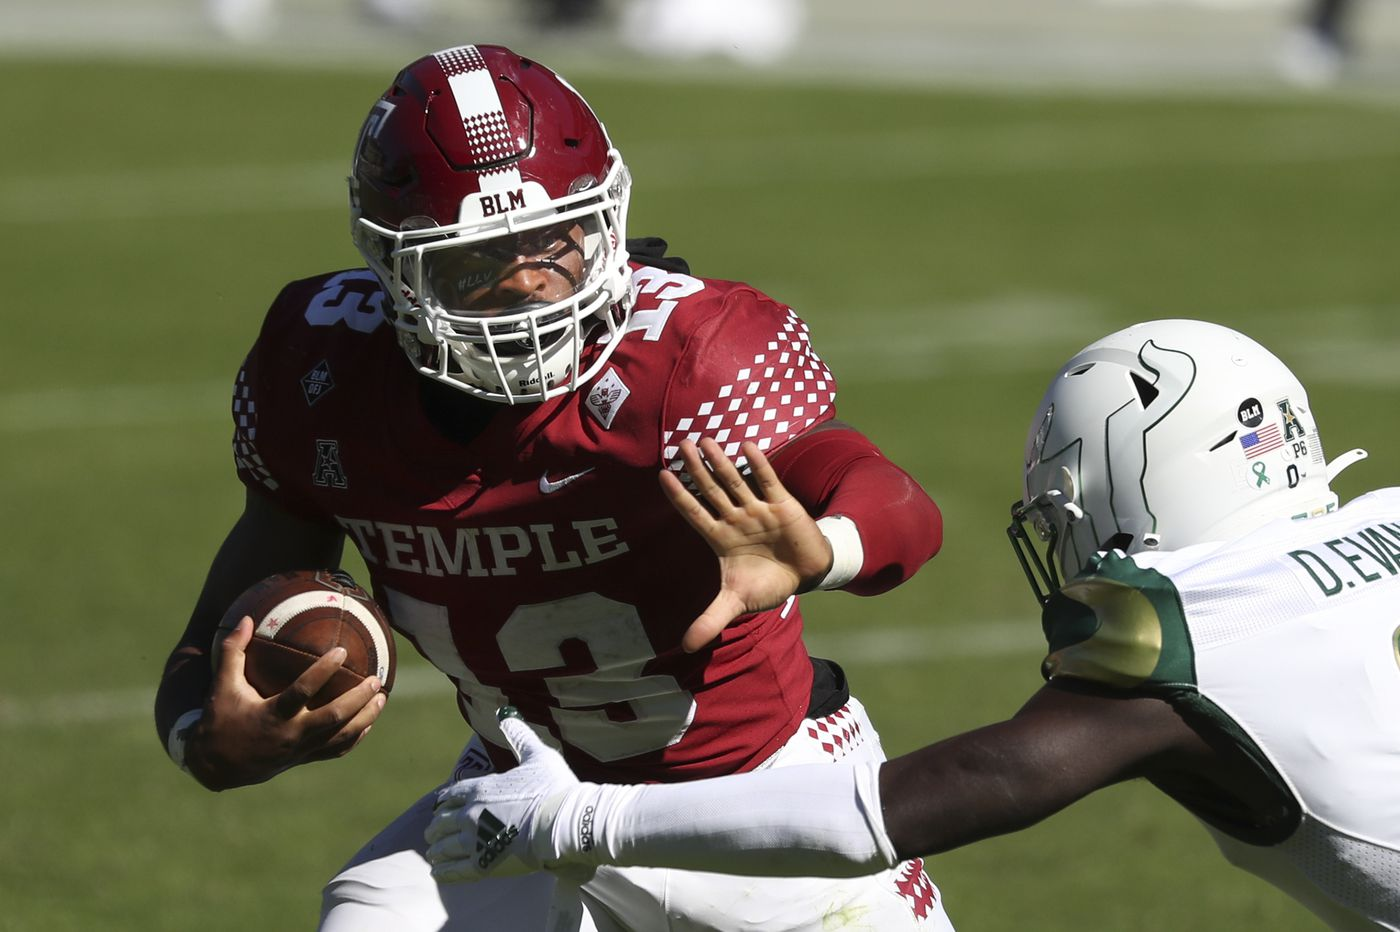 Crazy high scoring in the AAC means Temple better light up the scoreboard this week and every week | Marc Narducci